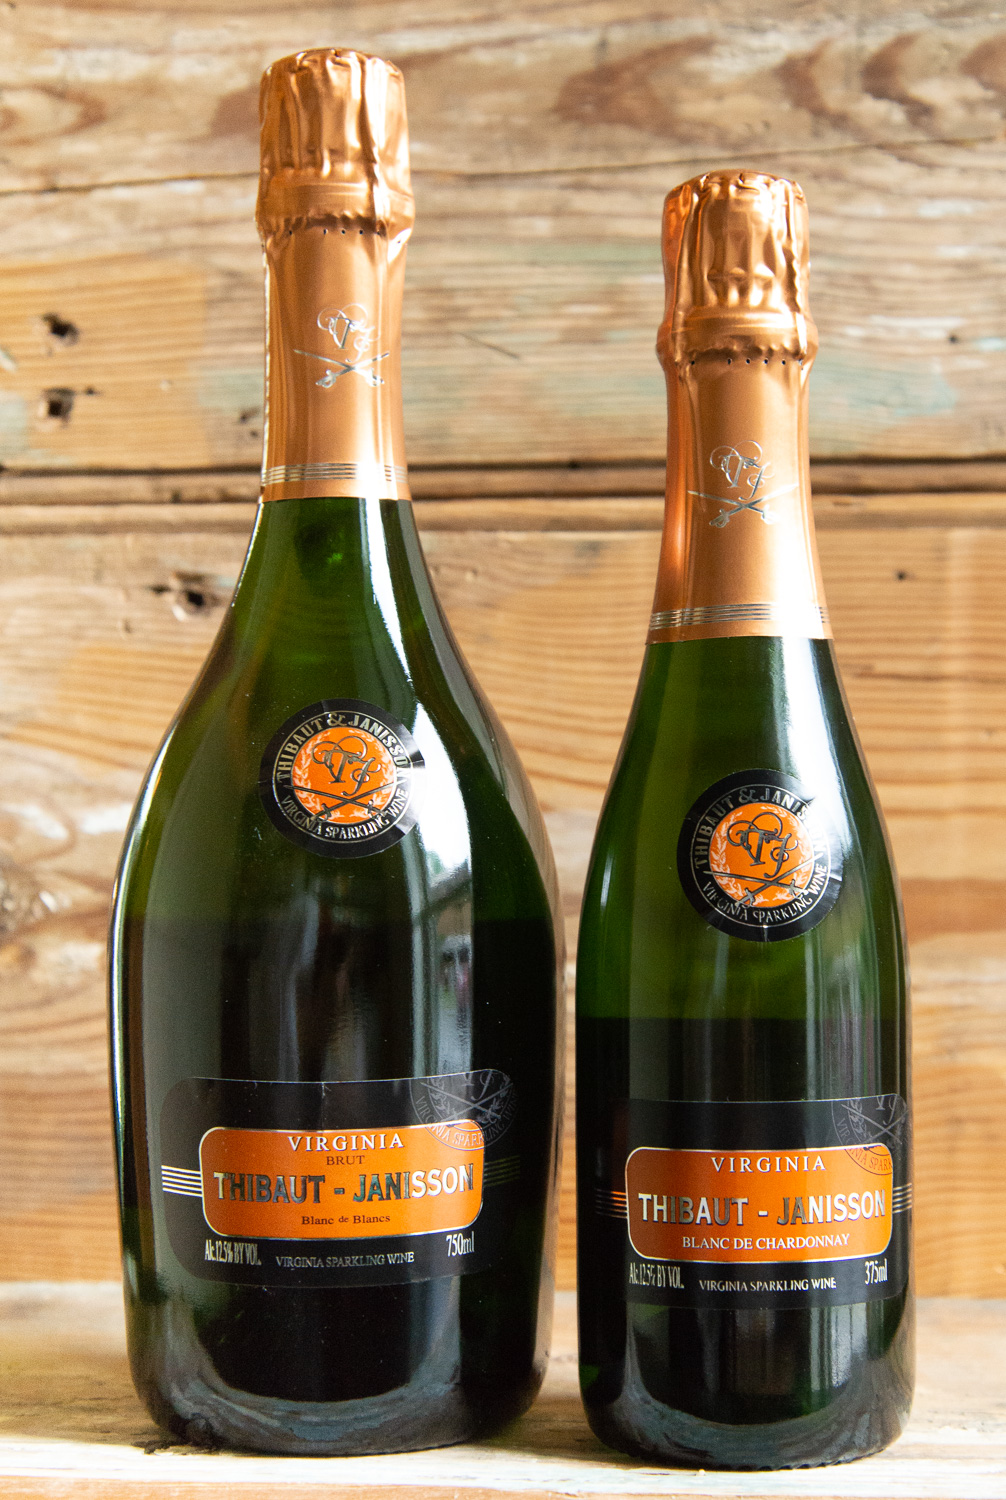 Thibaut-Janisson Brut NV - Origin: Monticello750mL: $29.95 | Sale: $26.95375mL: $18.95 | Sale: 17.05Thibaut Janisson is a joint venture between Champagne's Manuel Janisson and globe-trotting winemaker Claude Thibaut. They have captured the flavors and essence of the Virginia Terroir. This Cuvee, from the Monticello Appellation, has vibrant aromas of pear and ripe apples; the taste is perfectly balanced, crisp and refreshing. Thibaut notes that in America, unlike in other parts of the world, Champagne and sparkling wine is reserved for special occasions. He encourages that it should be enjoyed not just for celebrations and noteworthy events, but also as a highly versatile wine that pairs well with an assortment of foods and can stand on its own as a daily pleasure and petite indulgence.100% Chardonnay